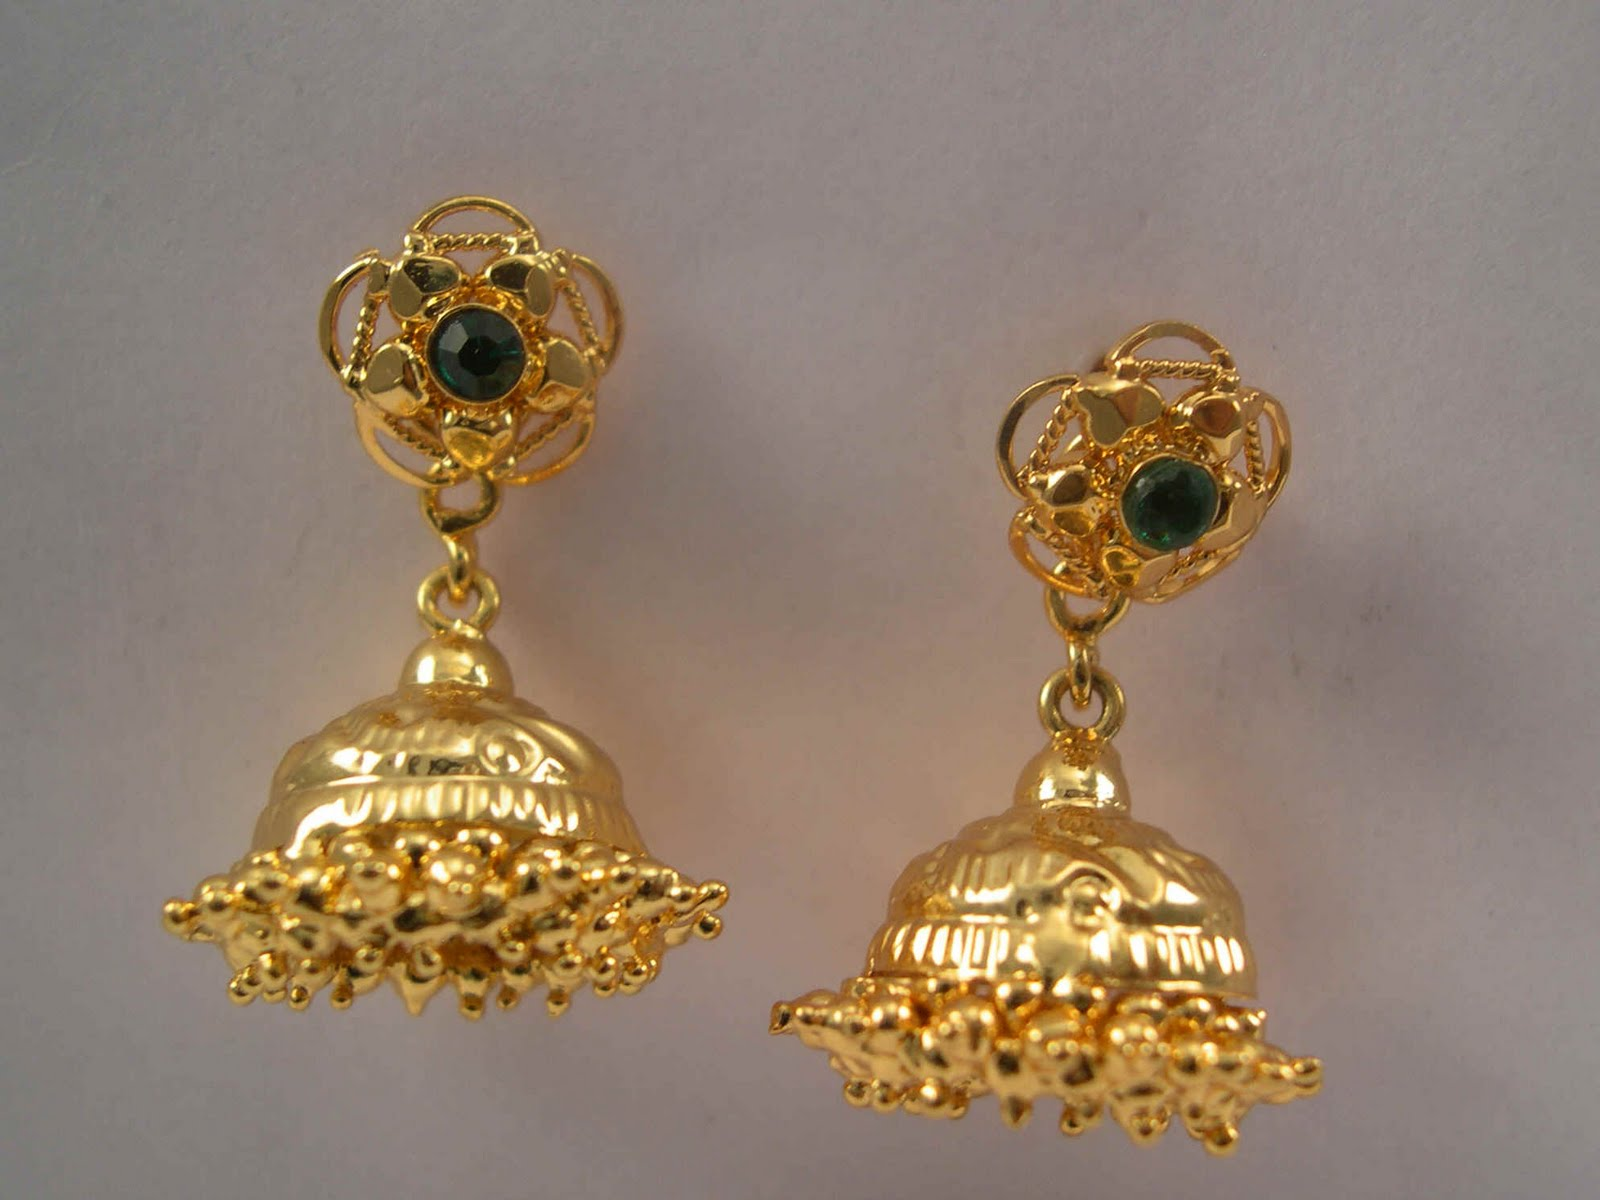 India Gold Jhumka Earrings, India Gold Jhumka Earrings